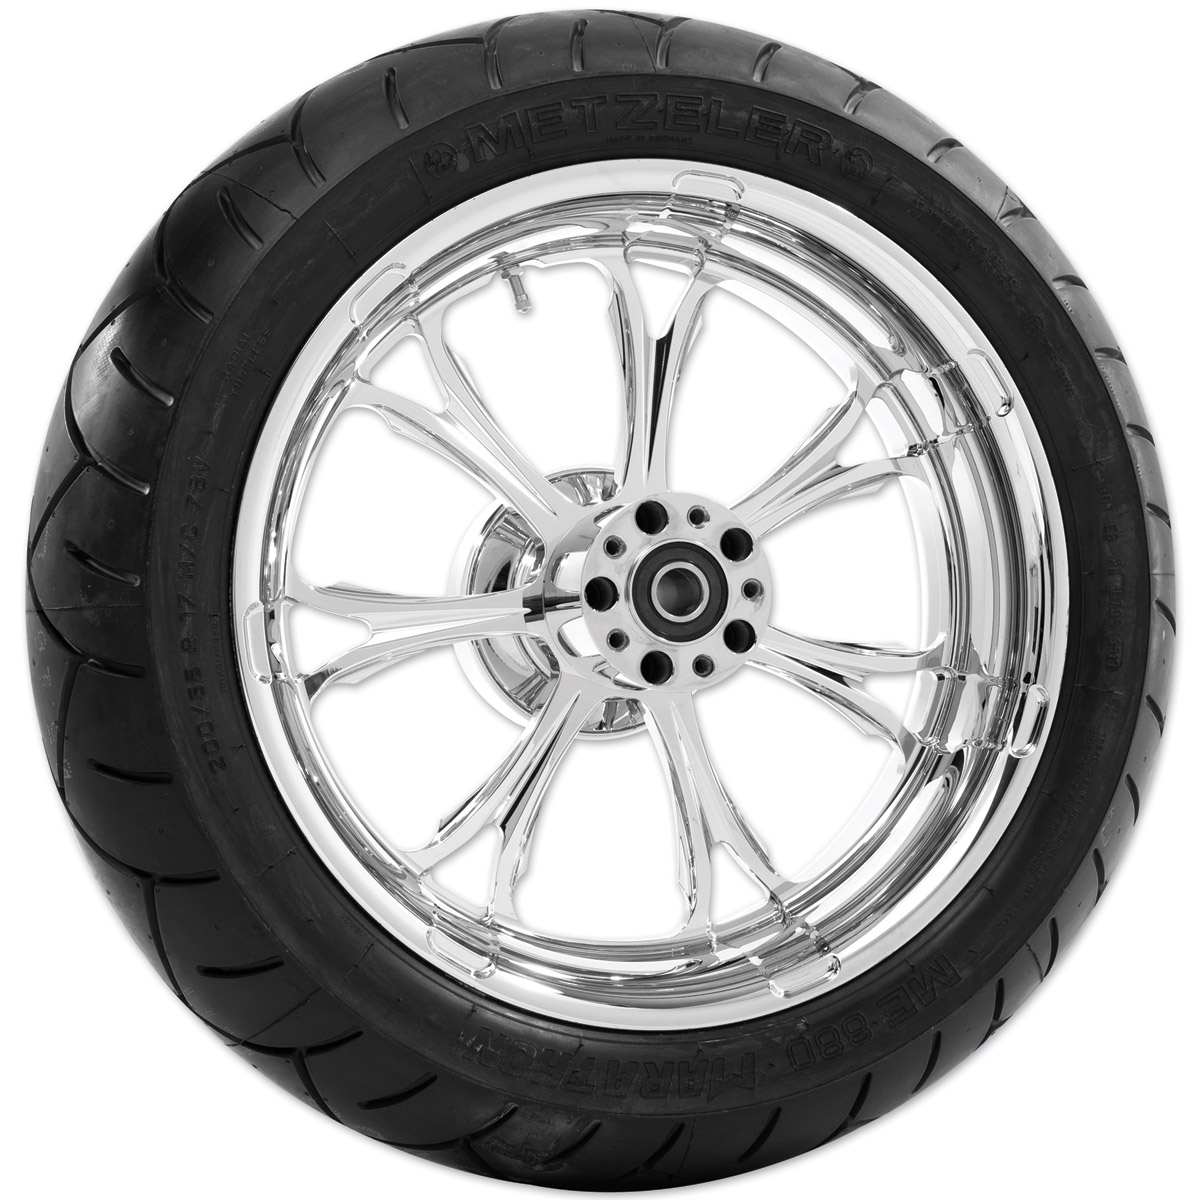 Performance Machine Paramount Chrome Rear Wheel Package, 17″ x 6″ with ABS